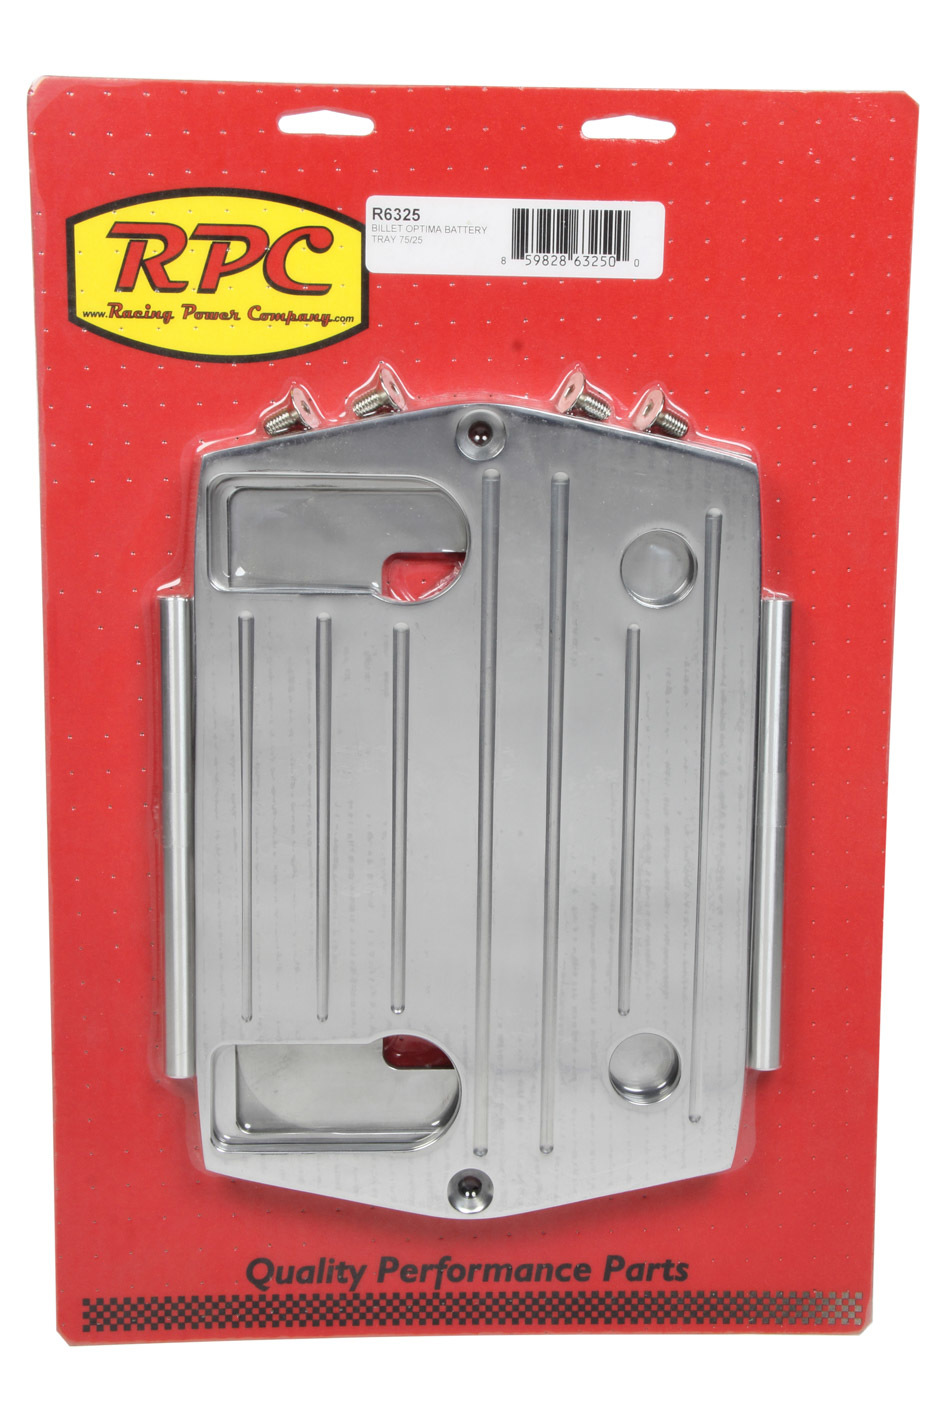 Racing Power Co-packaged Optima Alum Ball Milled Battery Tray Polished